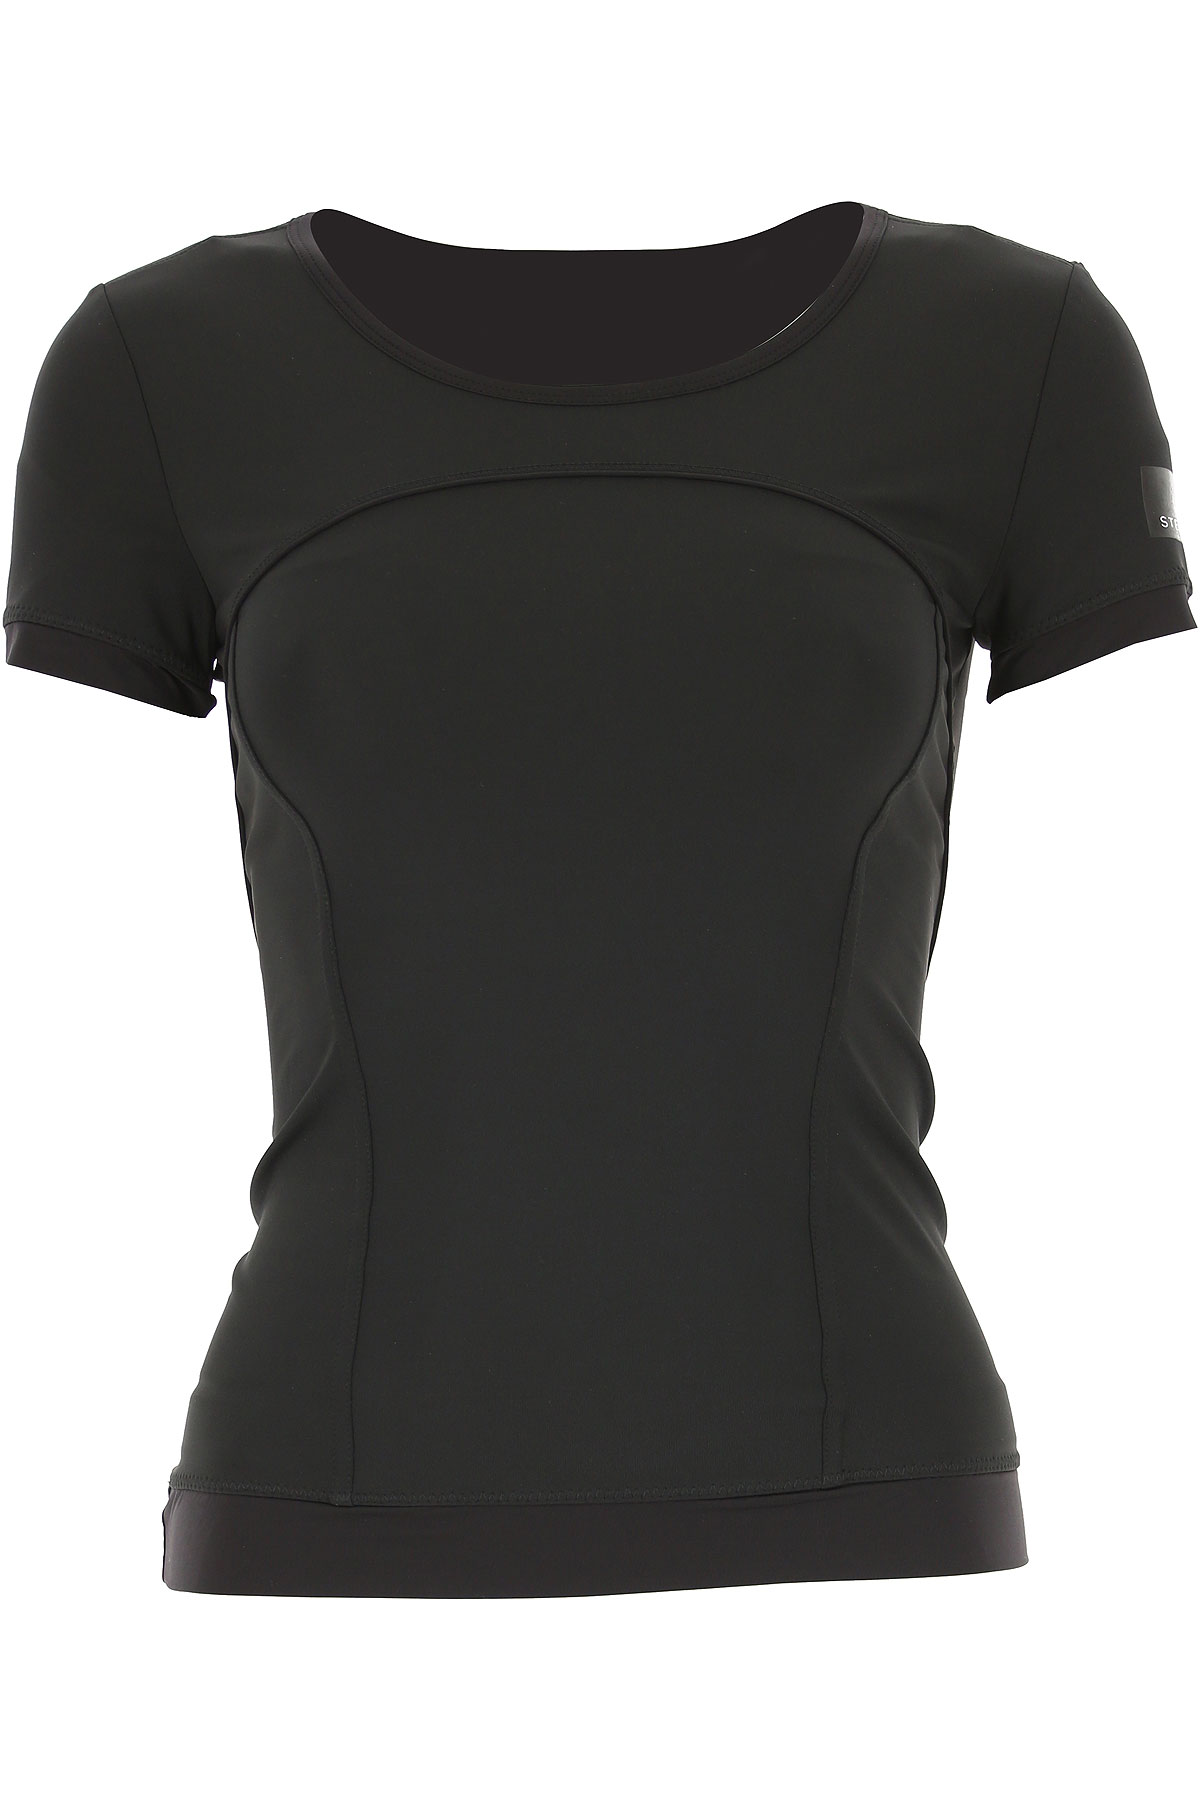 40b2709c0f0 Adidas T-Shirt for Women On Sale in Outlet, Black, Polyester Recycled,